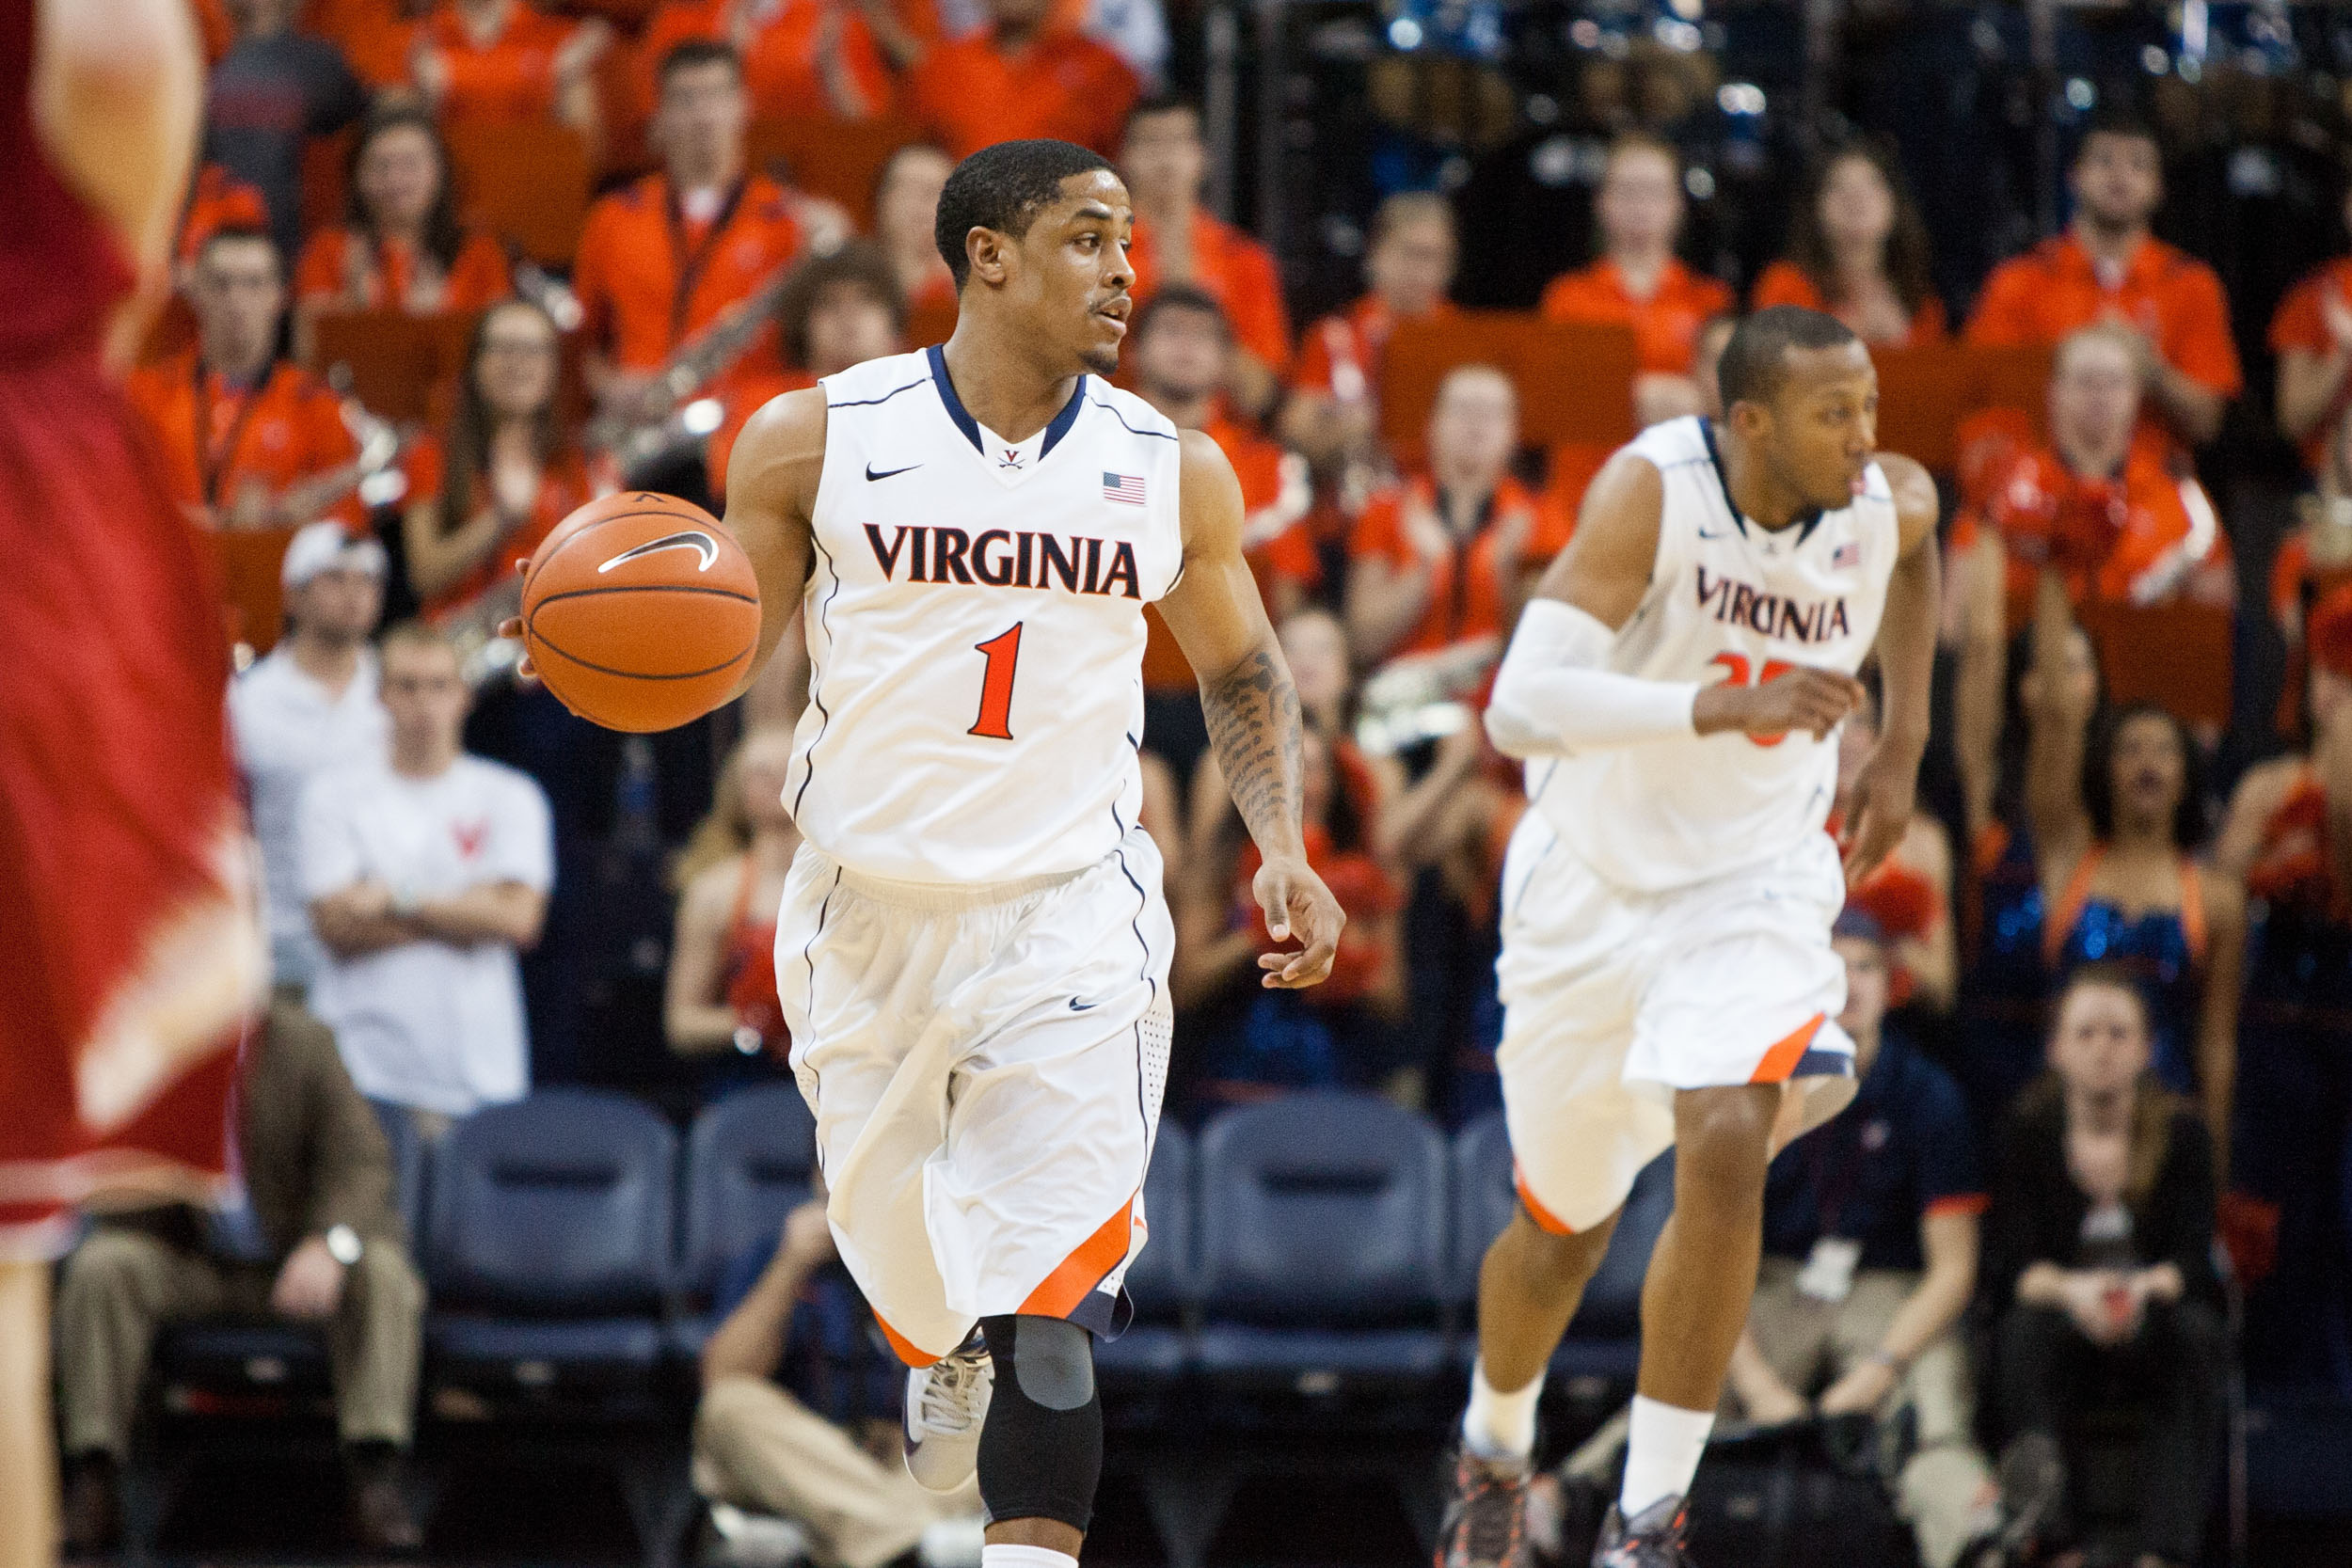 Evans, who had a solid four-year career at UVA, ranks ninth on the all-time assists list.